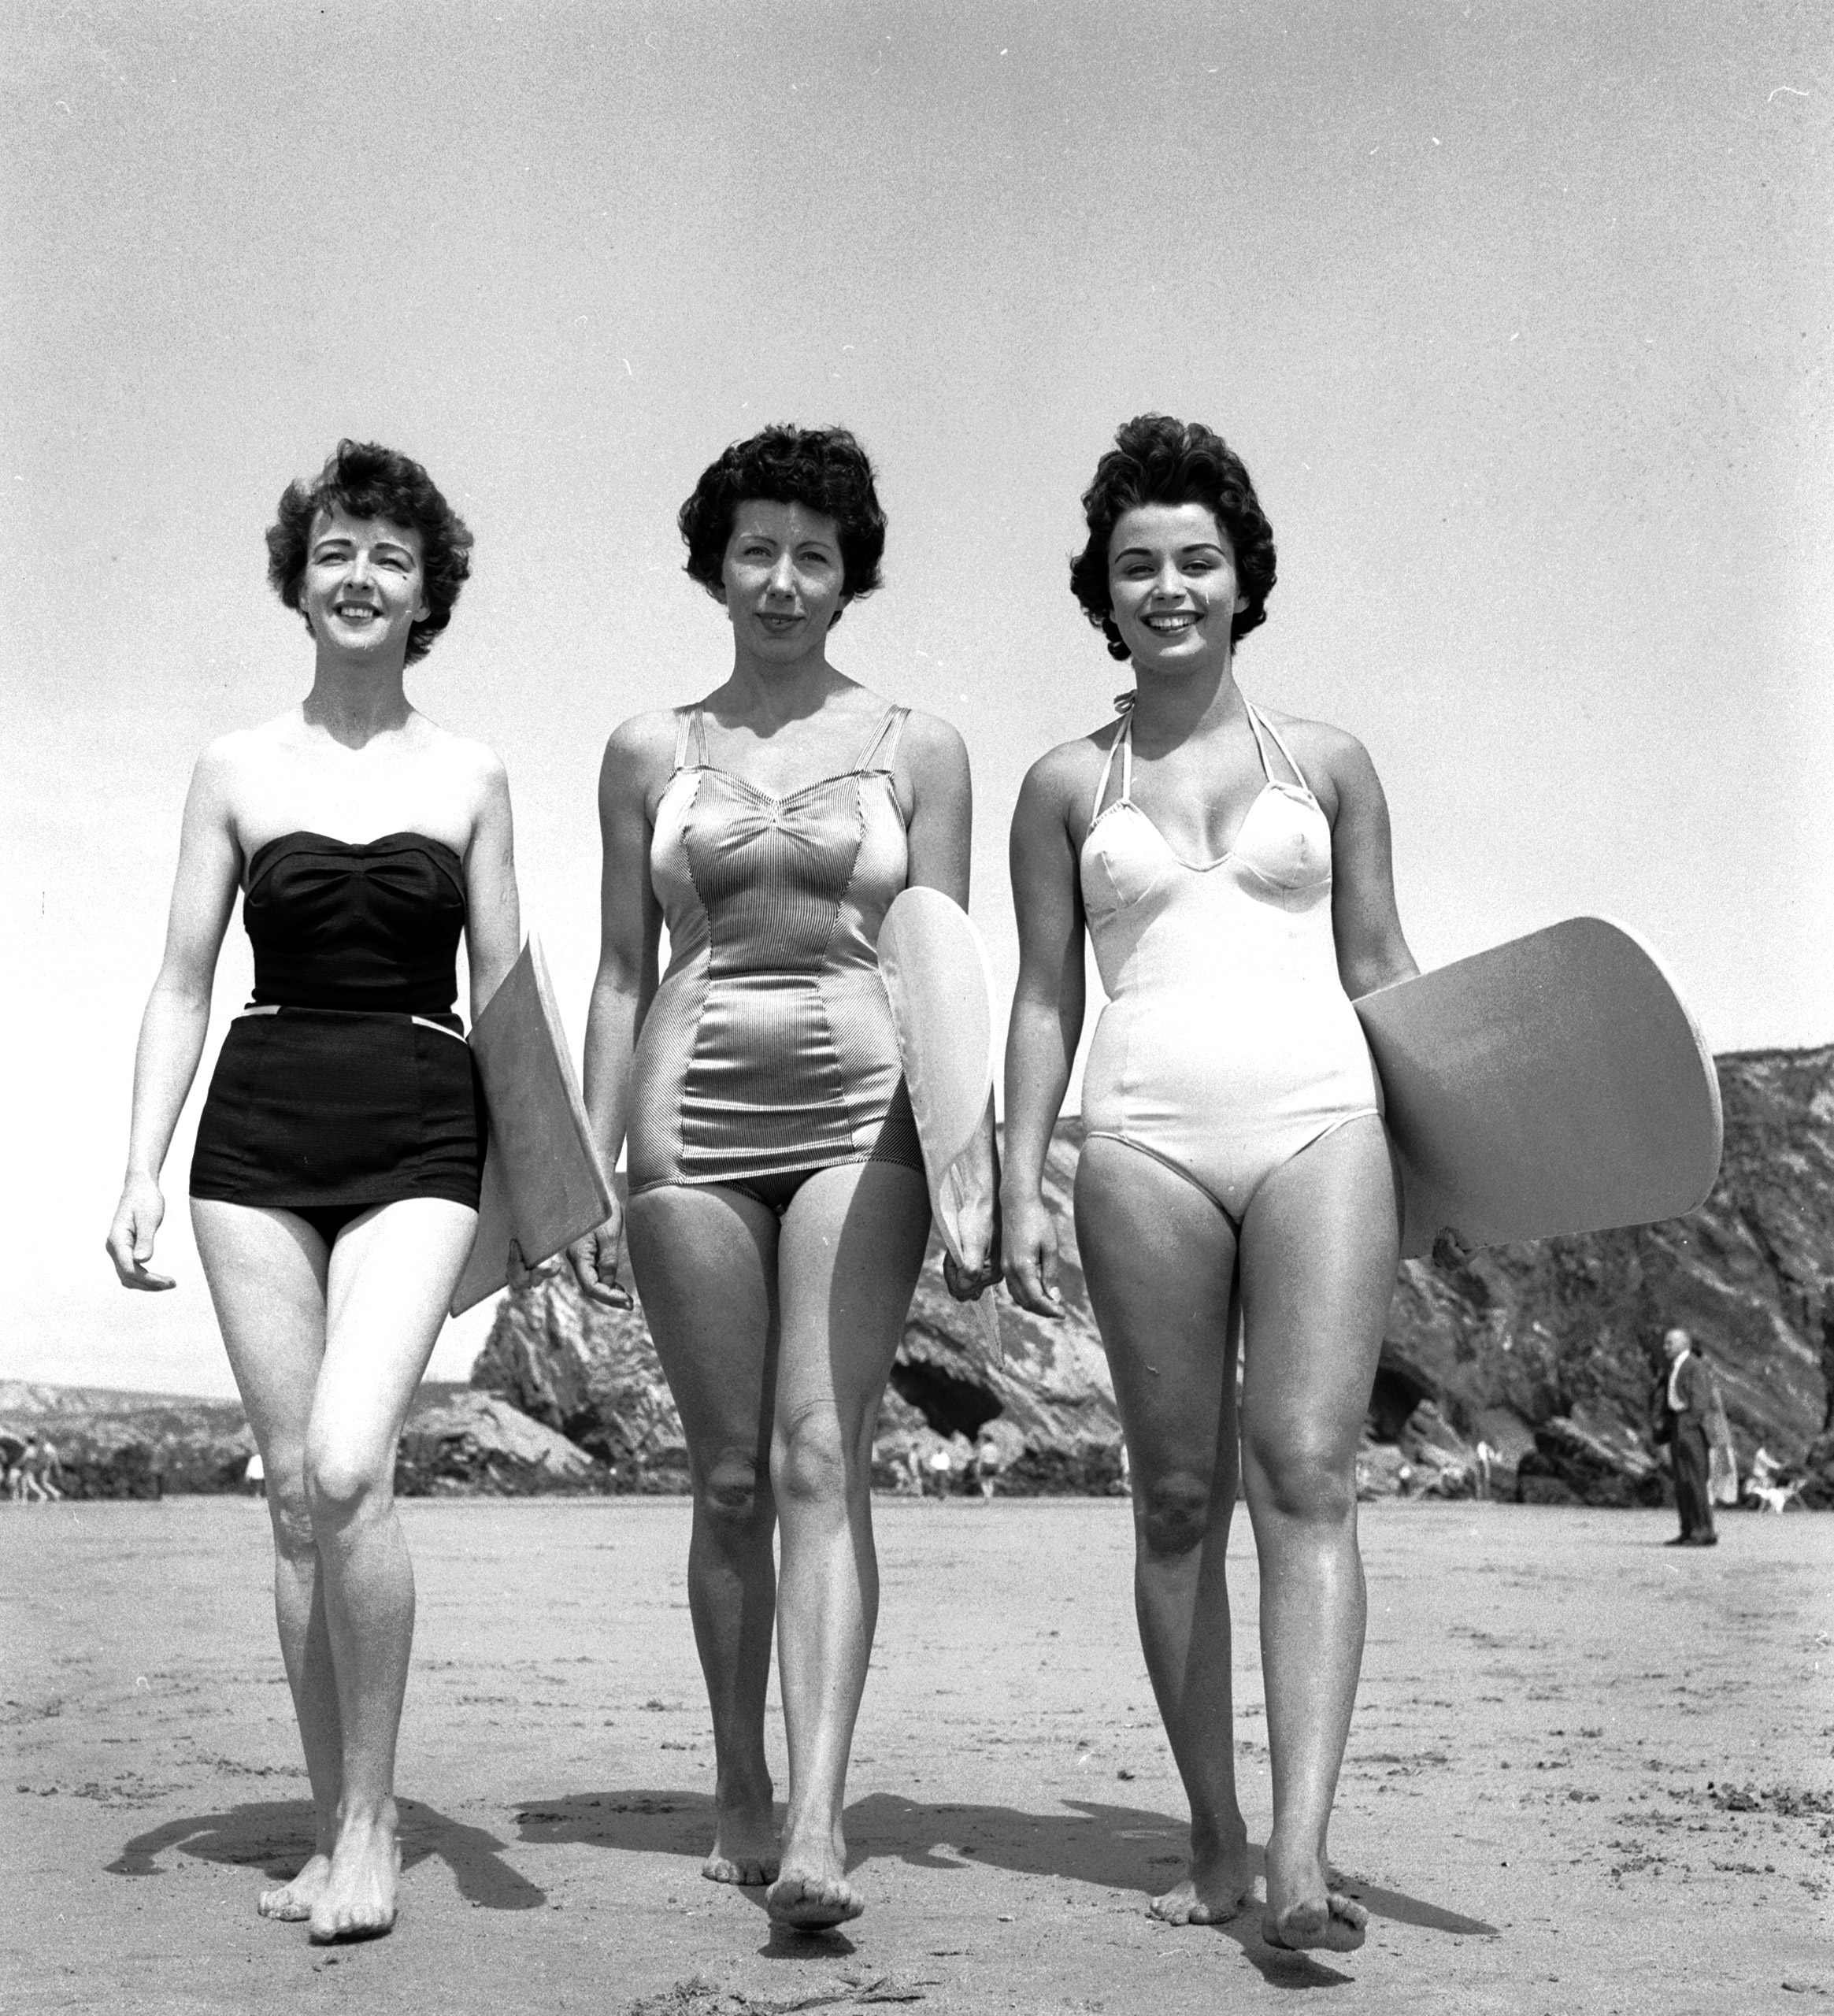 Three surfing girls (left to right, Marilyn Ridge, Lyn Connelly, Dee Delaney) prepare to ride the swell and maybe catch a tube or two down on Newquay beach, Cornwall, 1955.